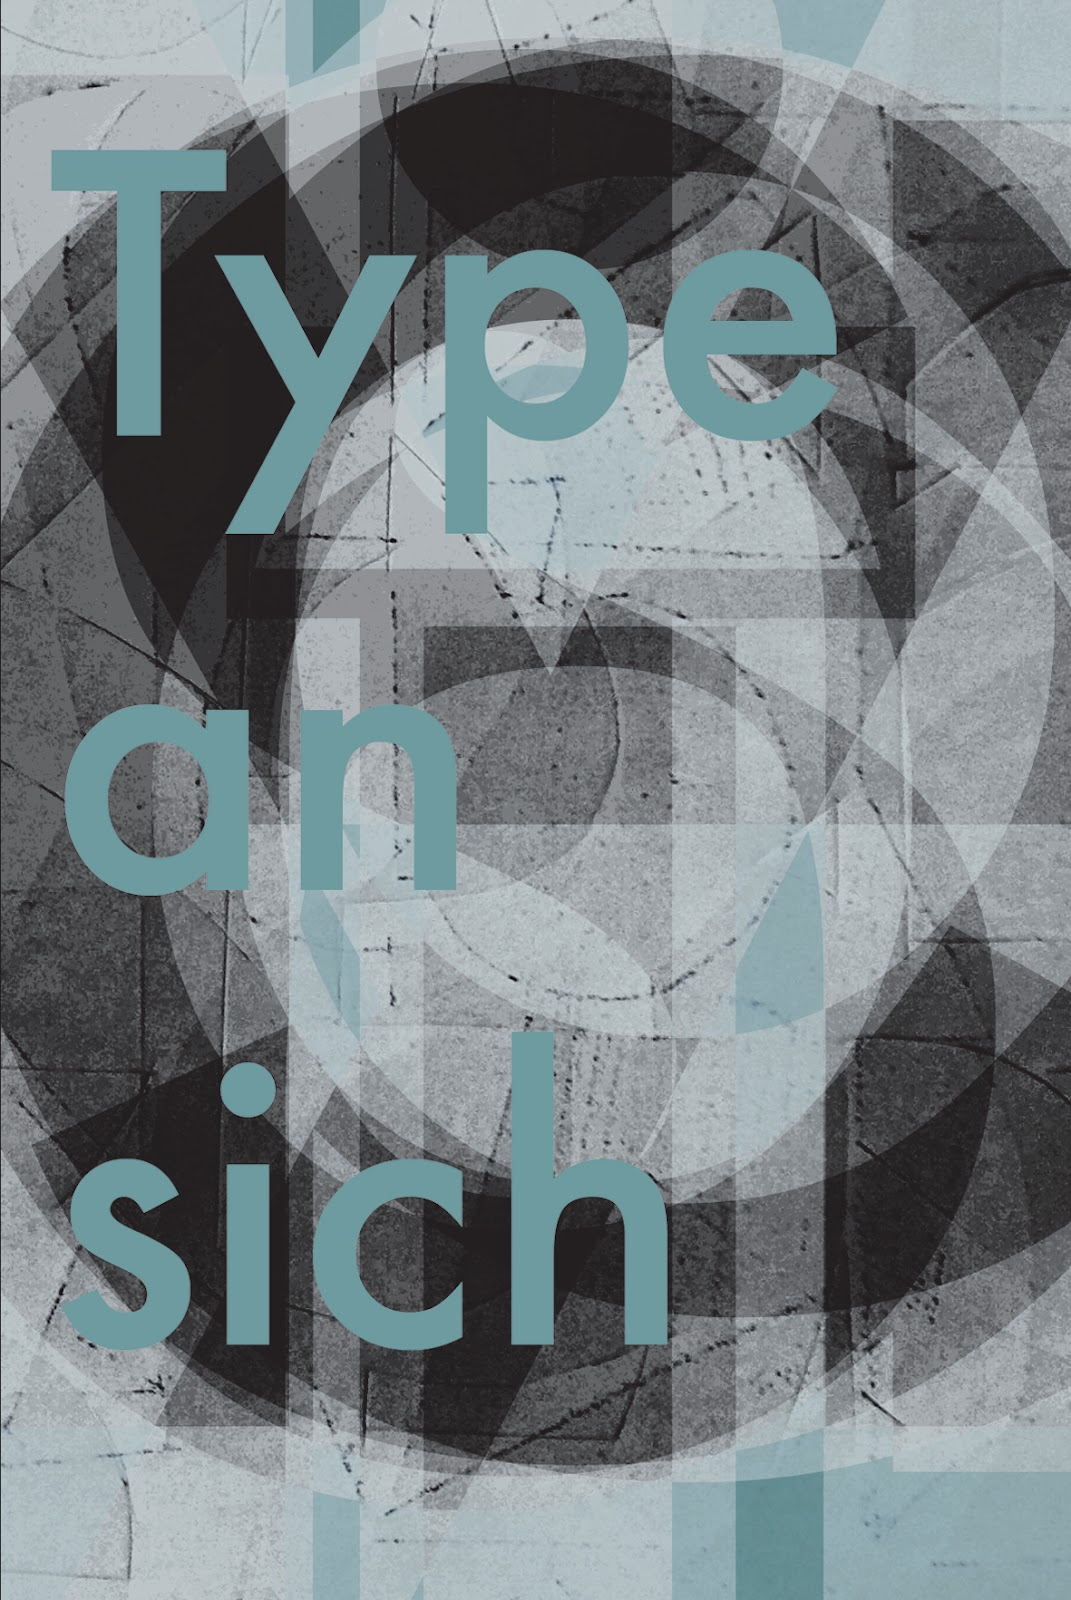 A typographic experiment posted on Wenke Mast's blog.